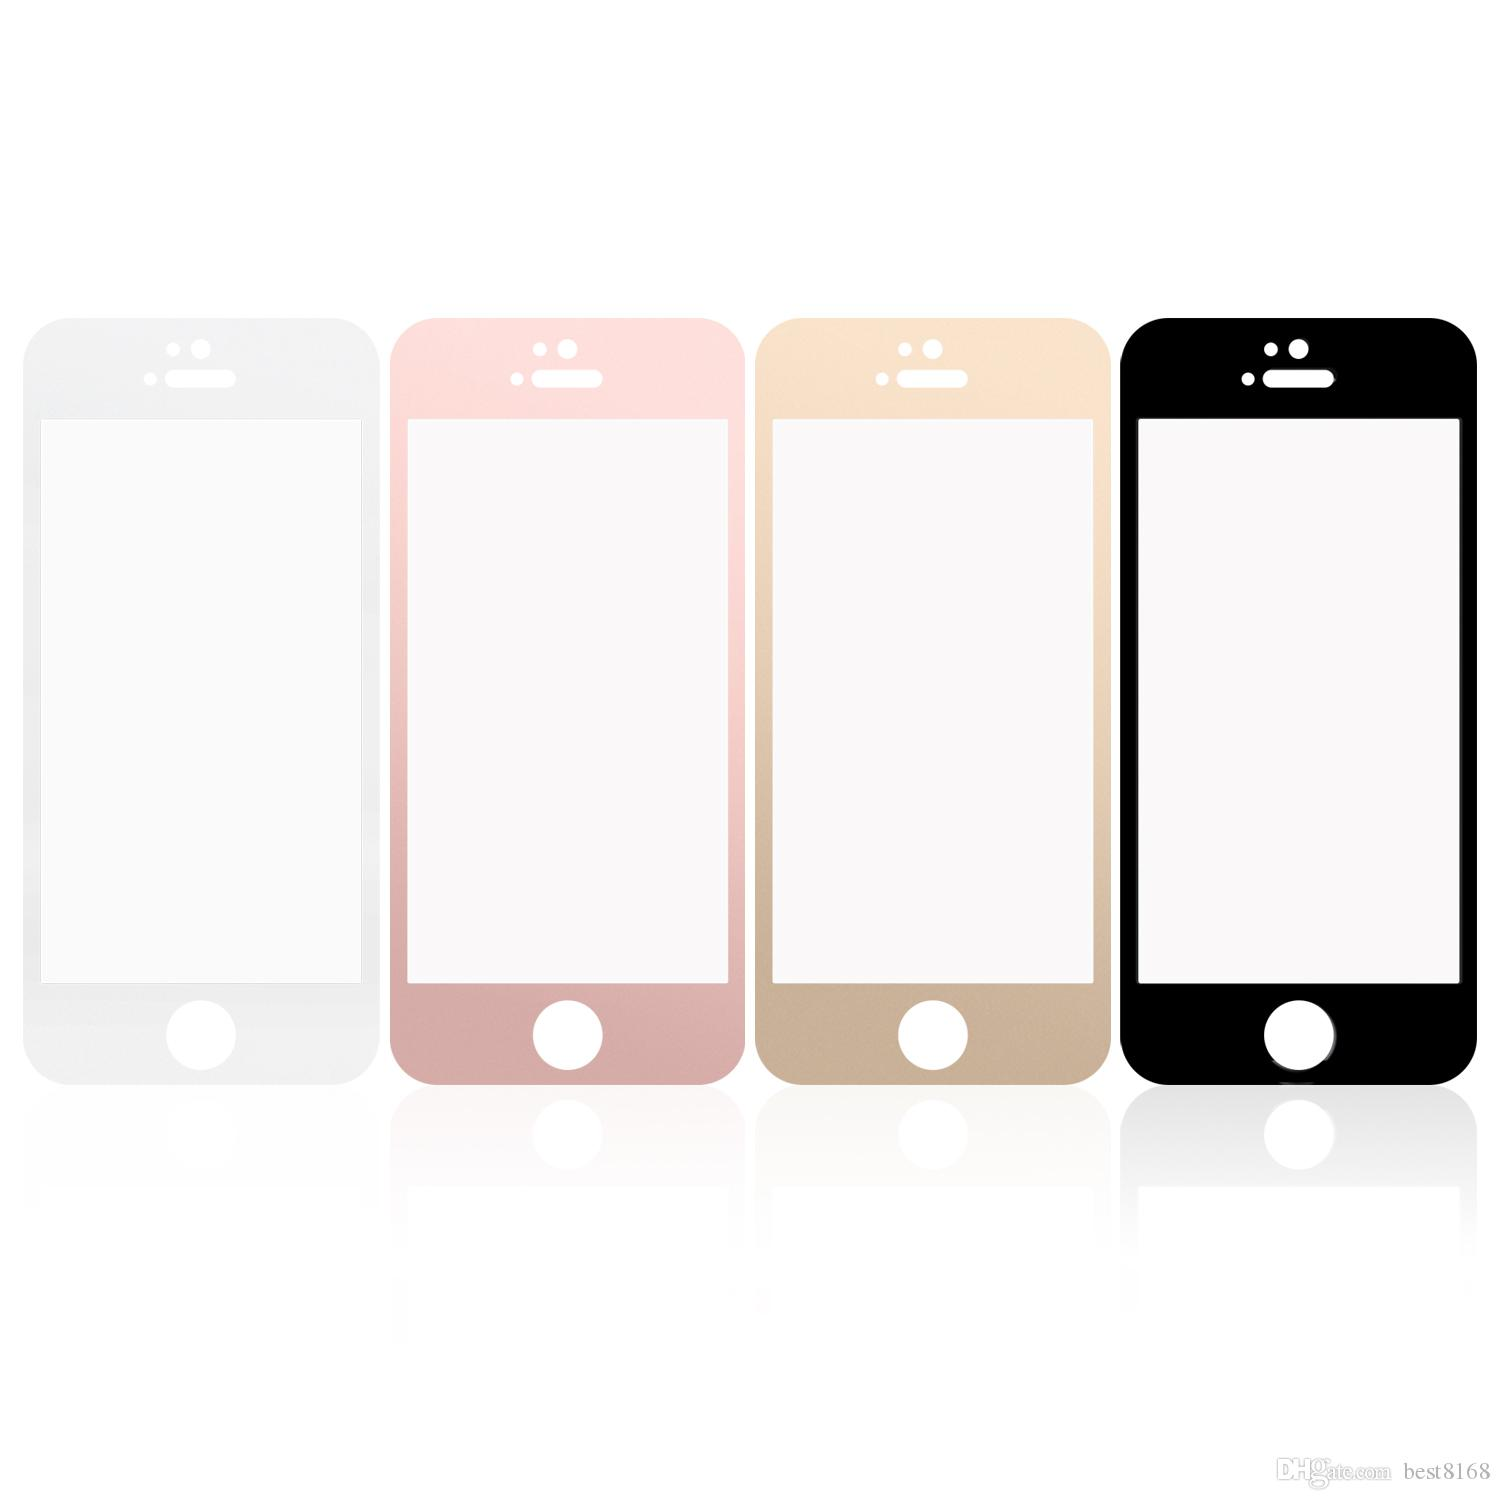 Silk Screen Full Screen Tempered Glass Screen Protector For iPhone 7 7P 6 6S 4 7